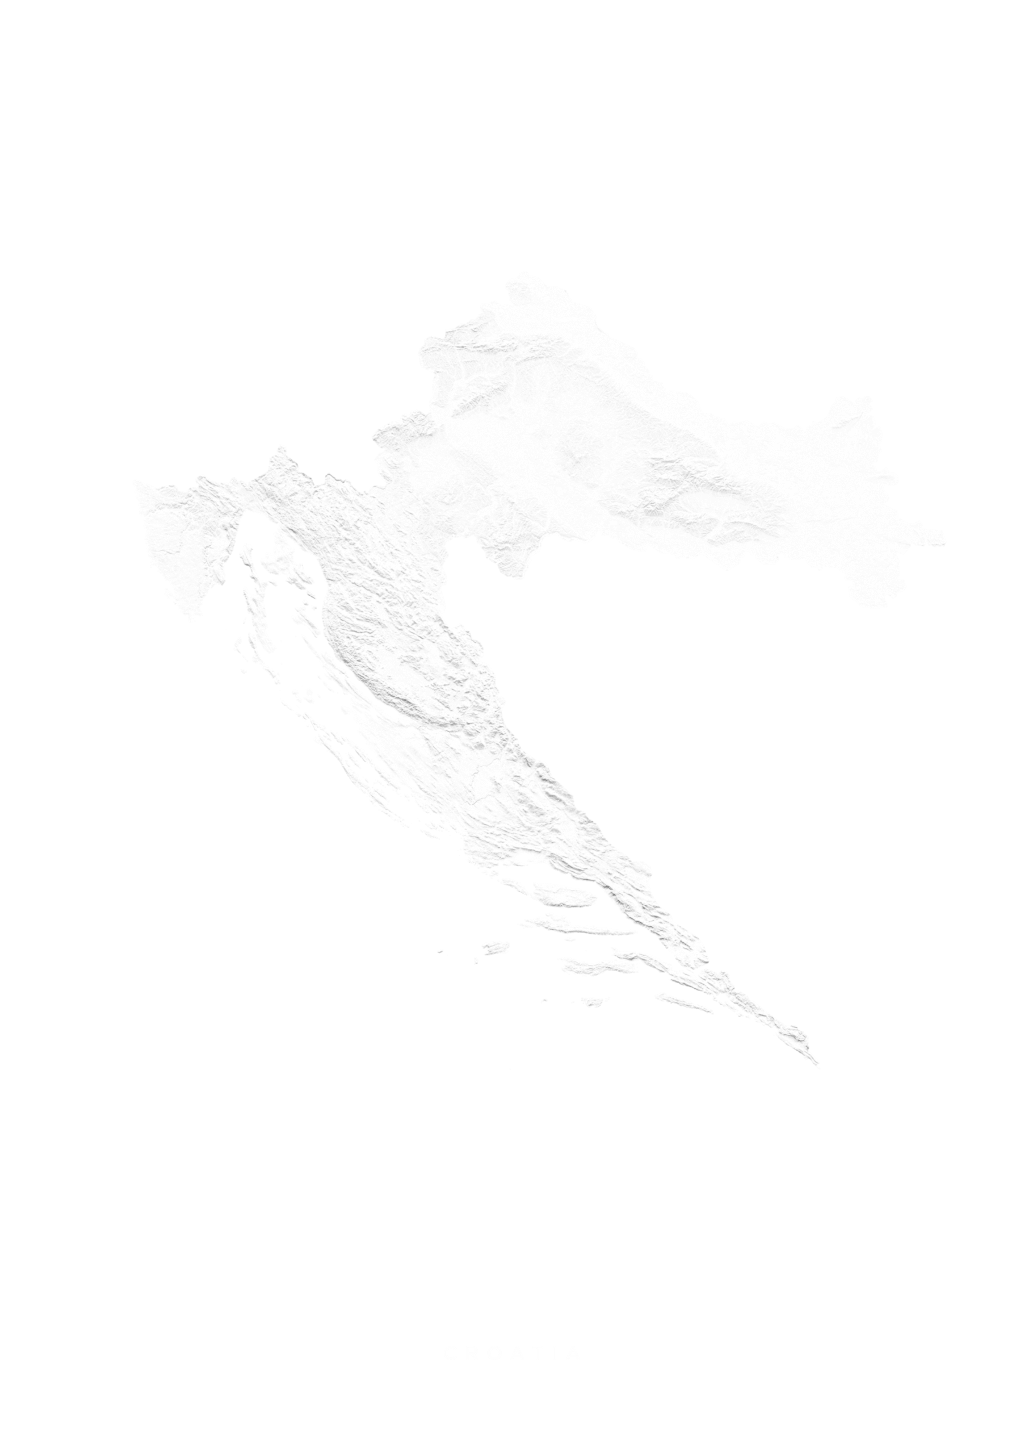 Croatia wall map